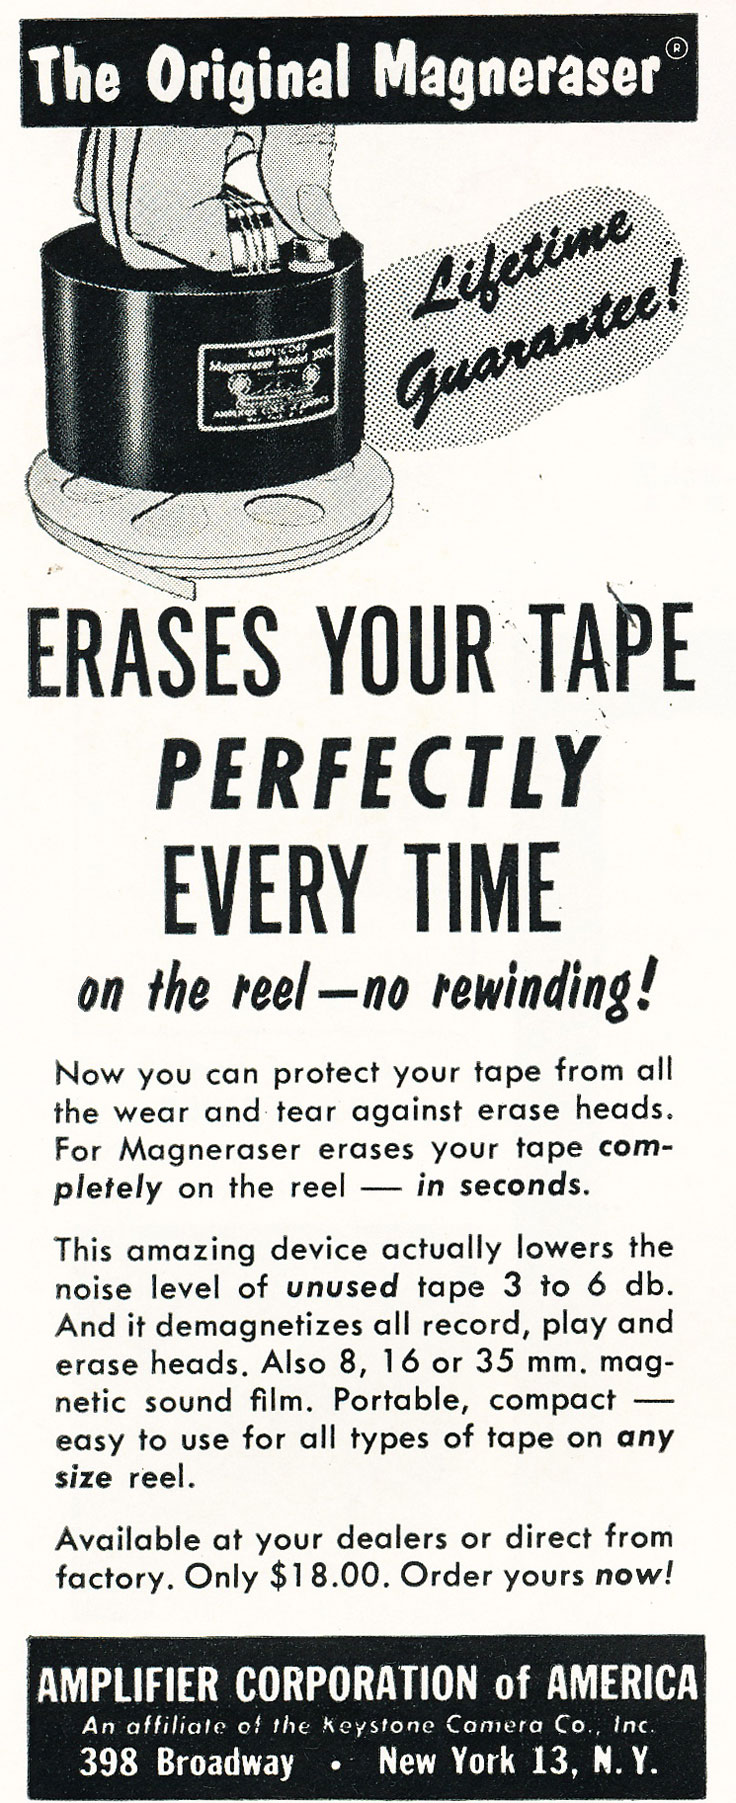 1960 ad for Amplifier Corporation of America's Bulk reel to reel tape eraser in Reel2ReelTexas.com's vintage recording collection